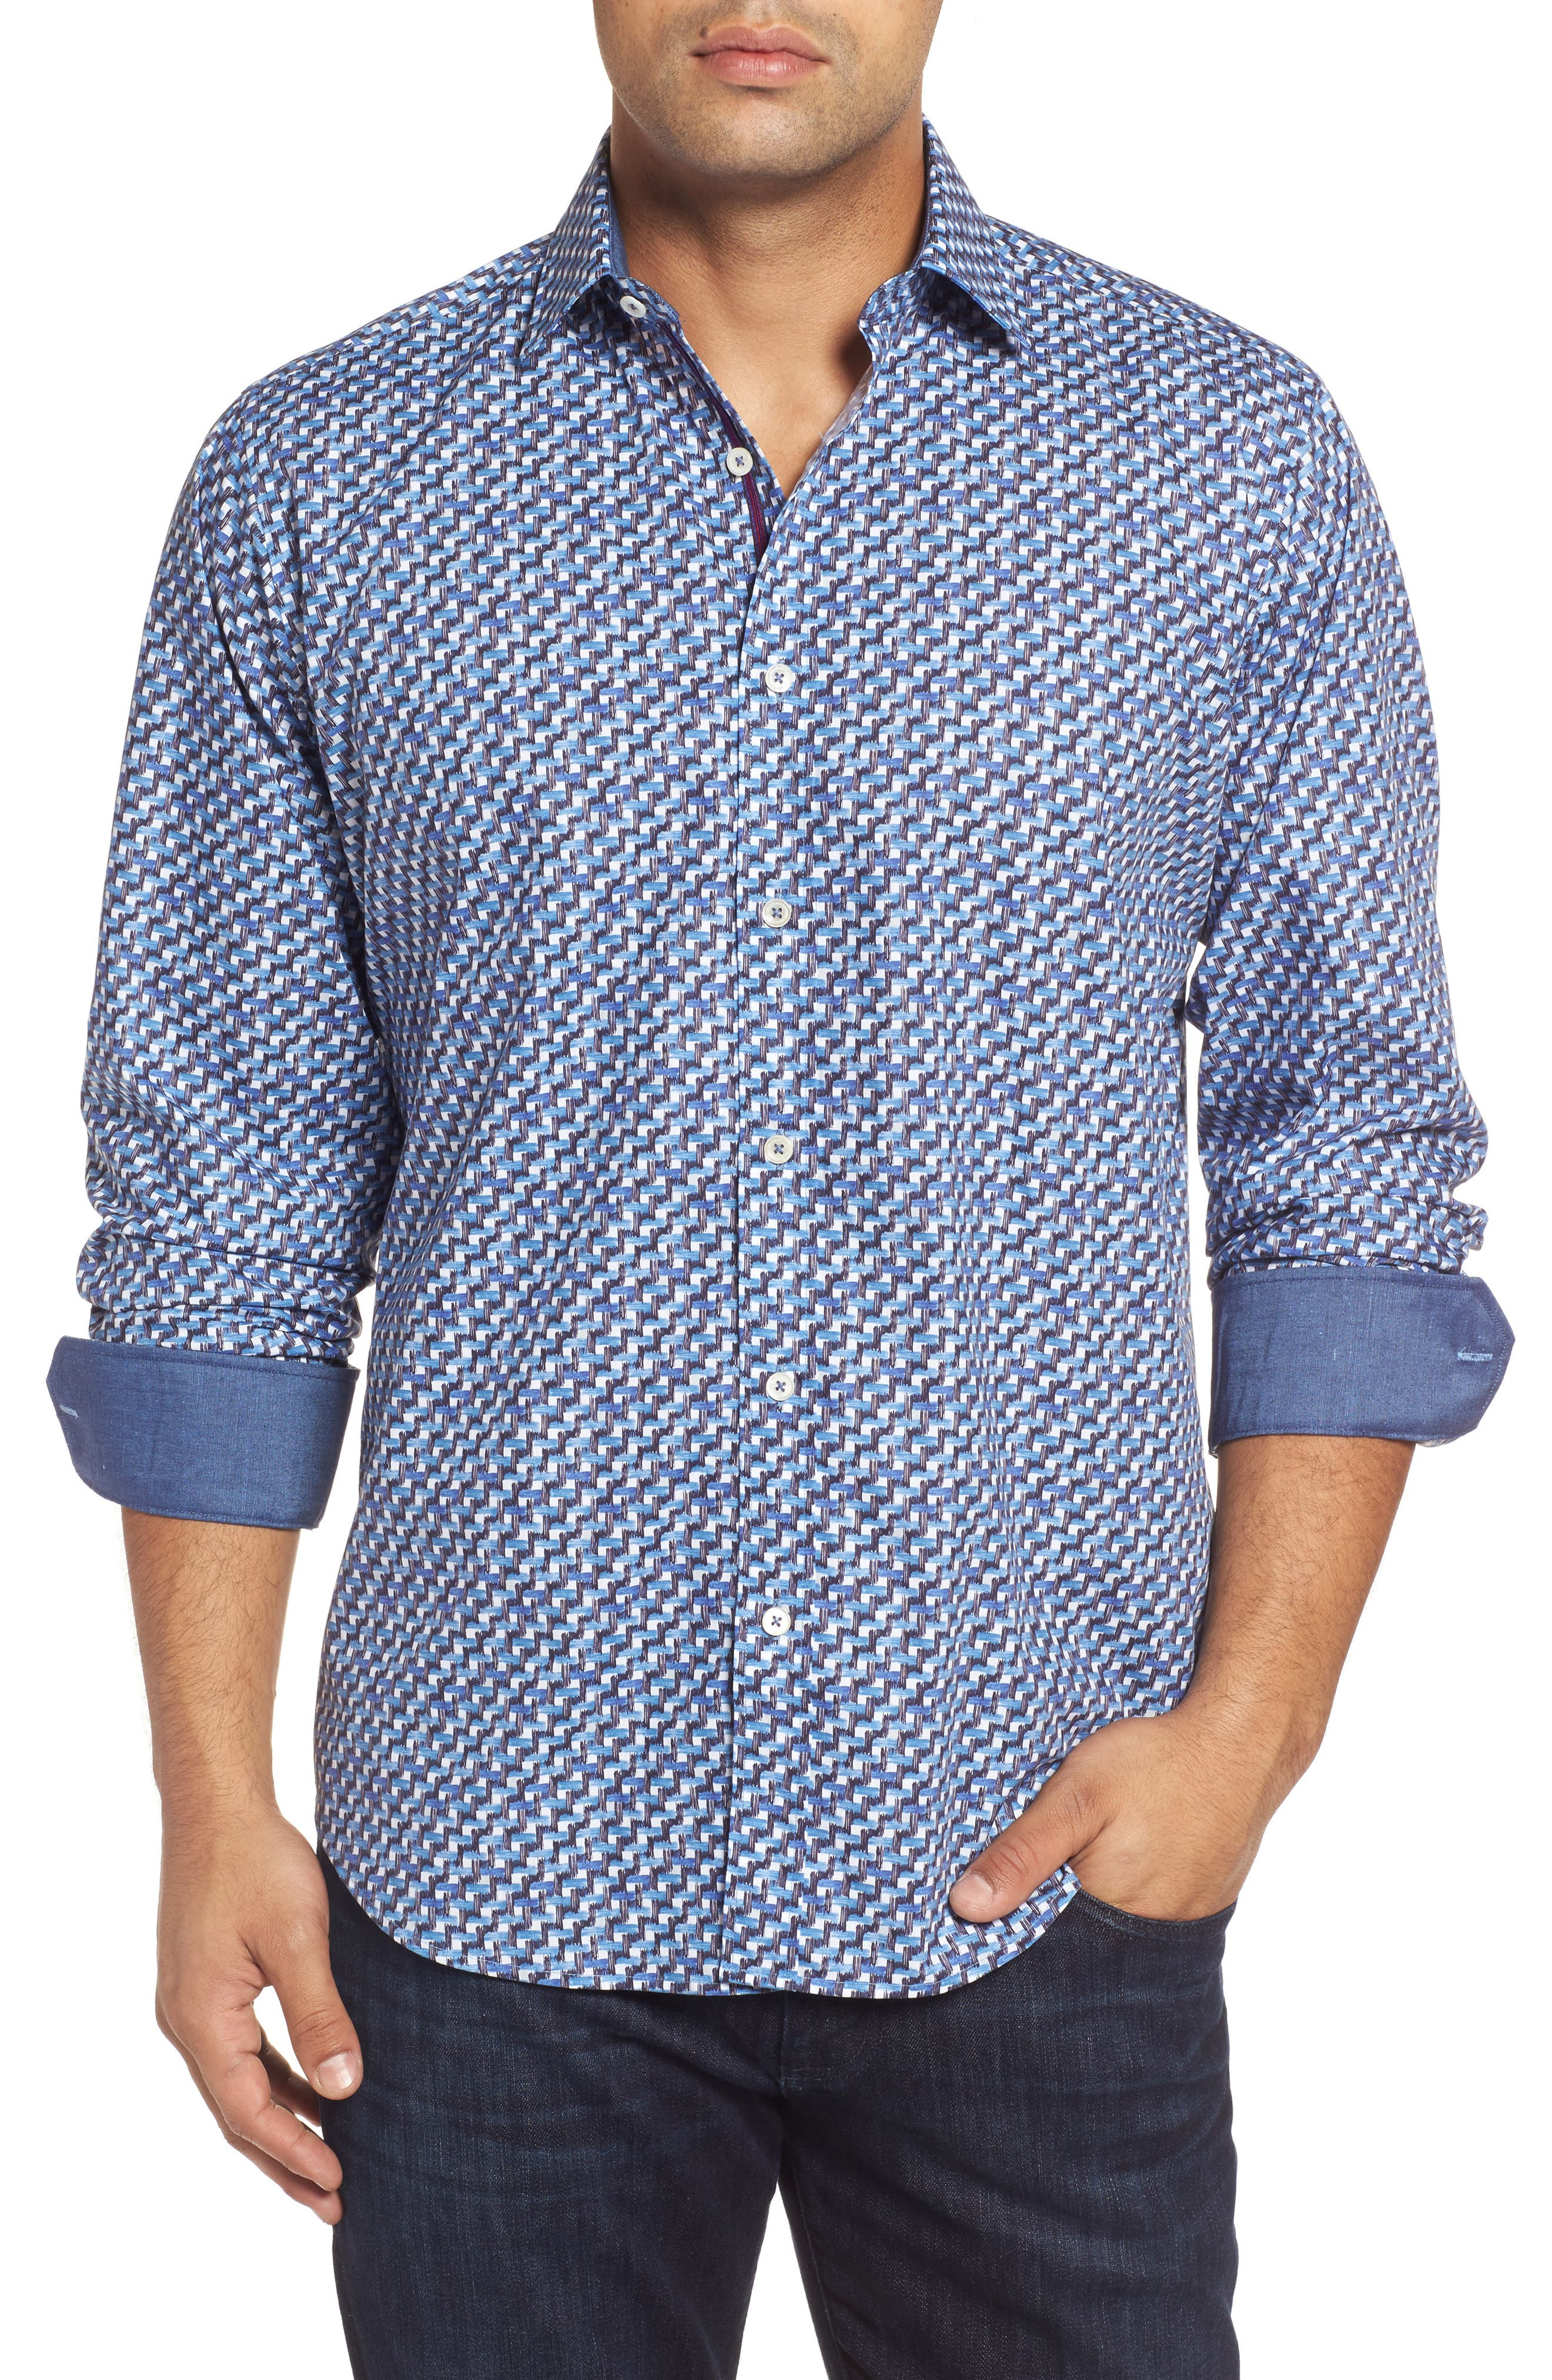 Alternate Image 1 Selected - Bugatchi Classic Fit Weave Print Sport Shirt